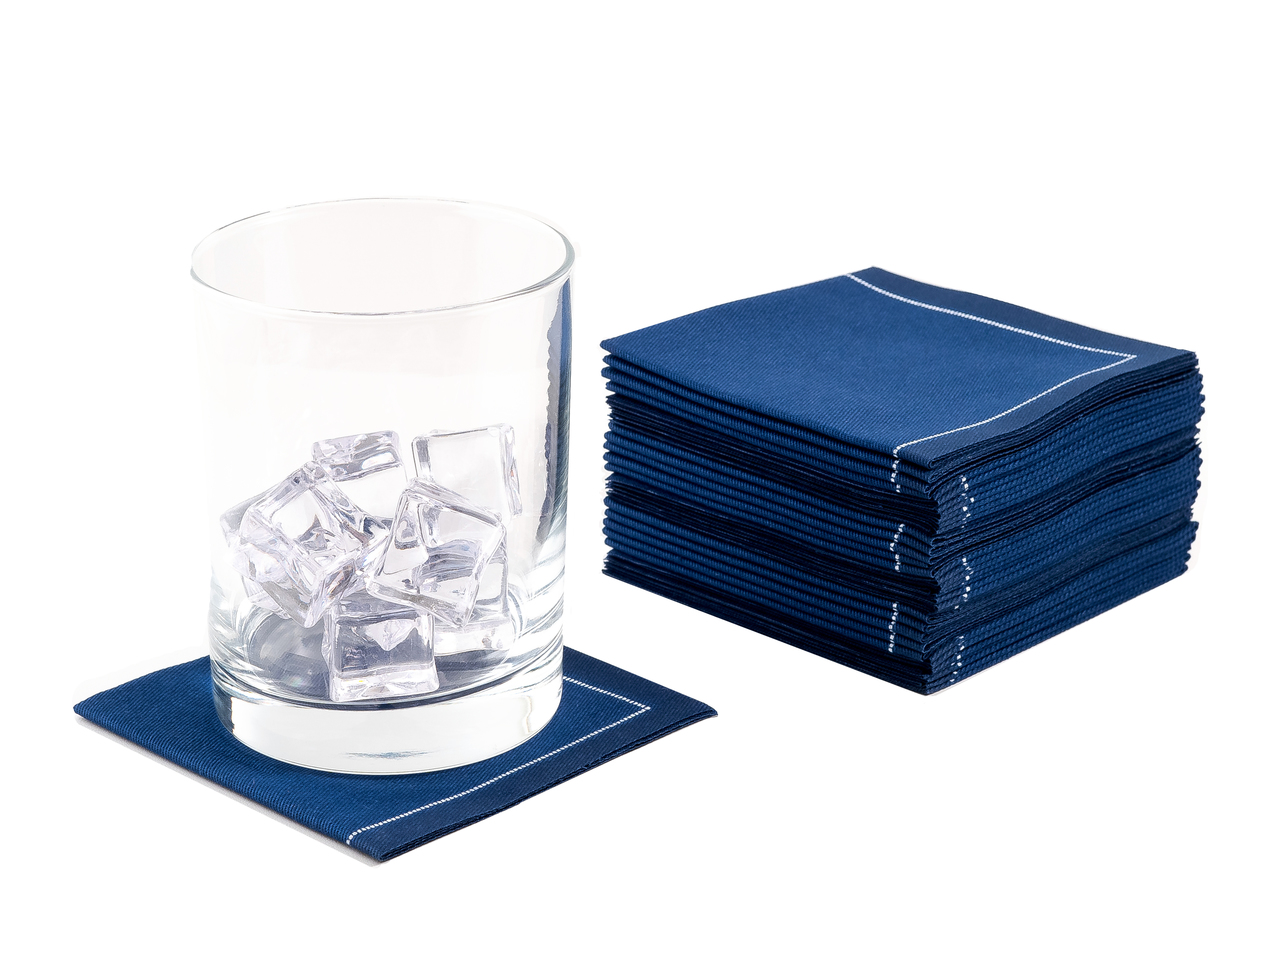 "Midnight Blue 1/4 Fold Cocktail Premium - 8"" x 8"" (folded 4"" x 4"") - 30 units"